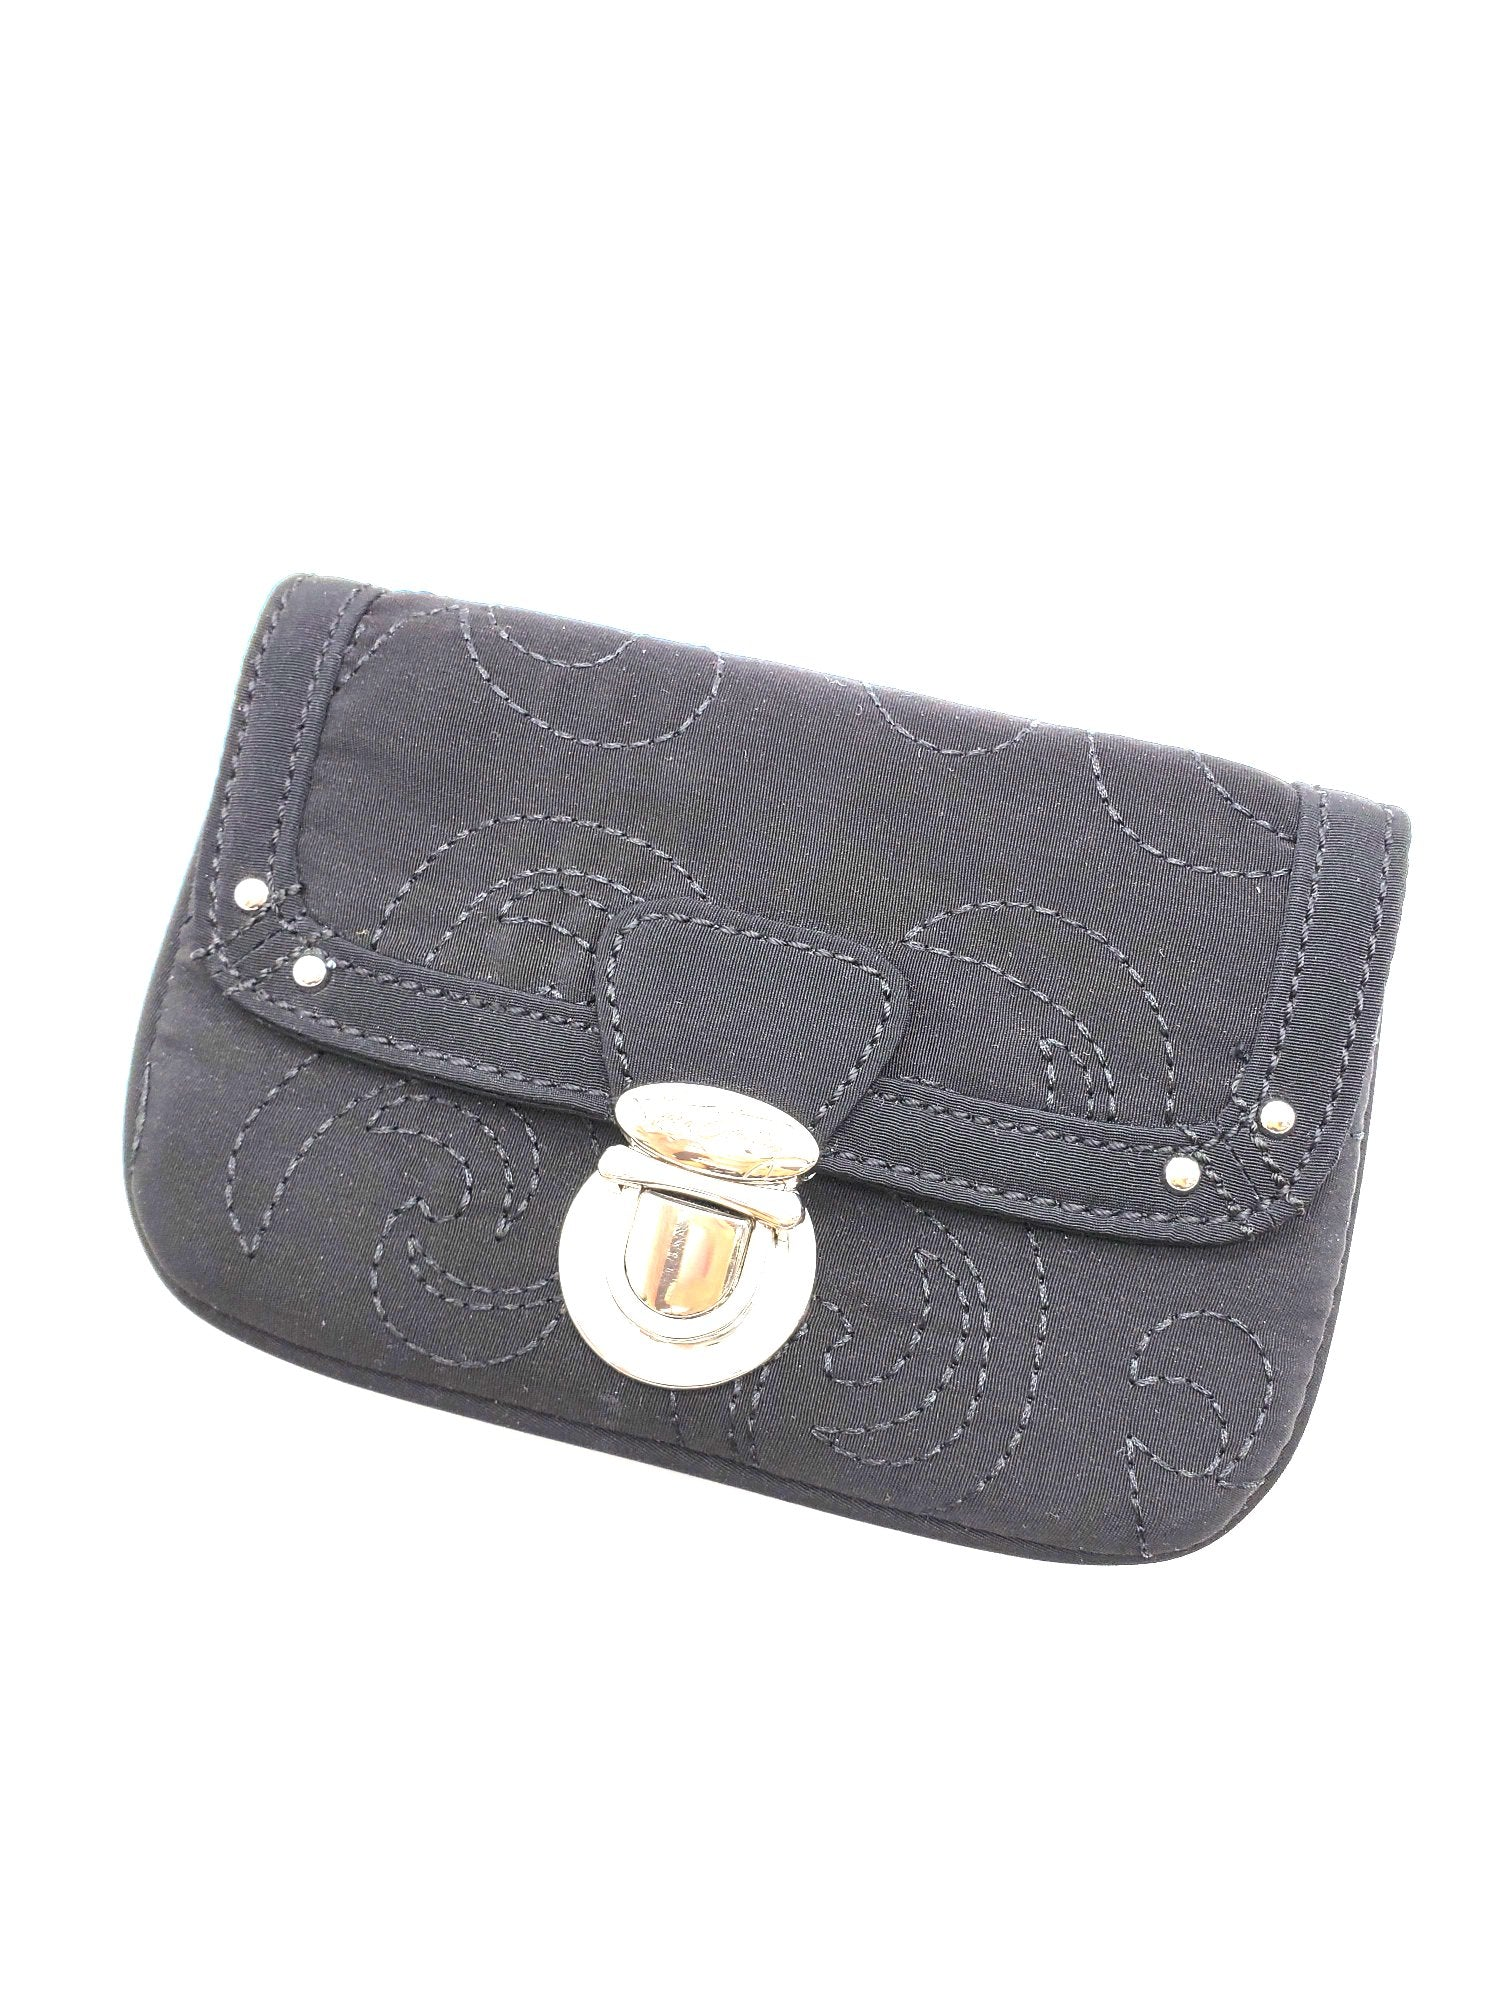 Primary Photo - BRAND: VERA BRADLEY <BR>STYLE: COIN PURSE <BR>COLOR: BLACK <BR>SIZE: SMALL <BR>SKU: 262-26211-139524<BR>AS IS